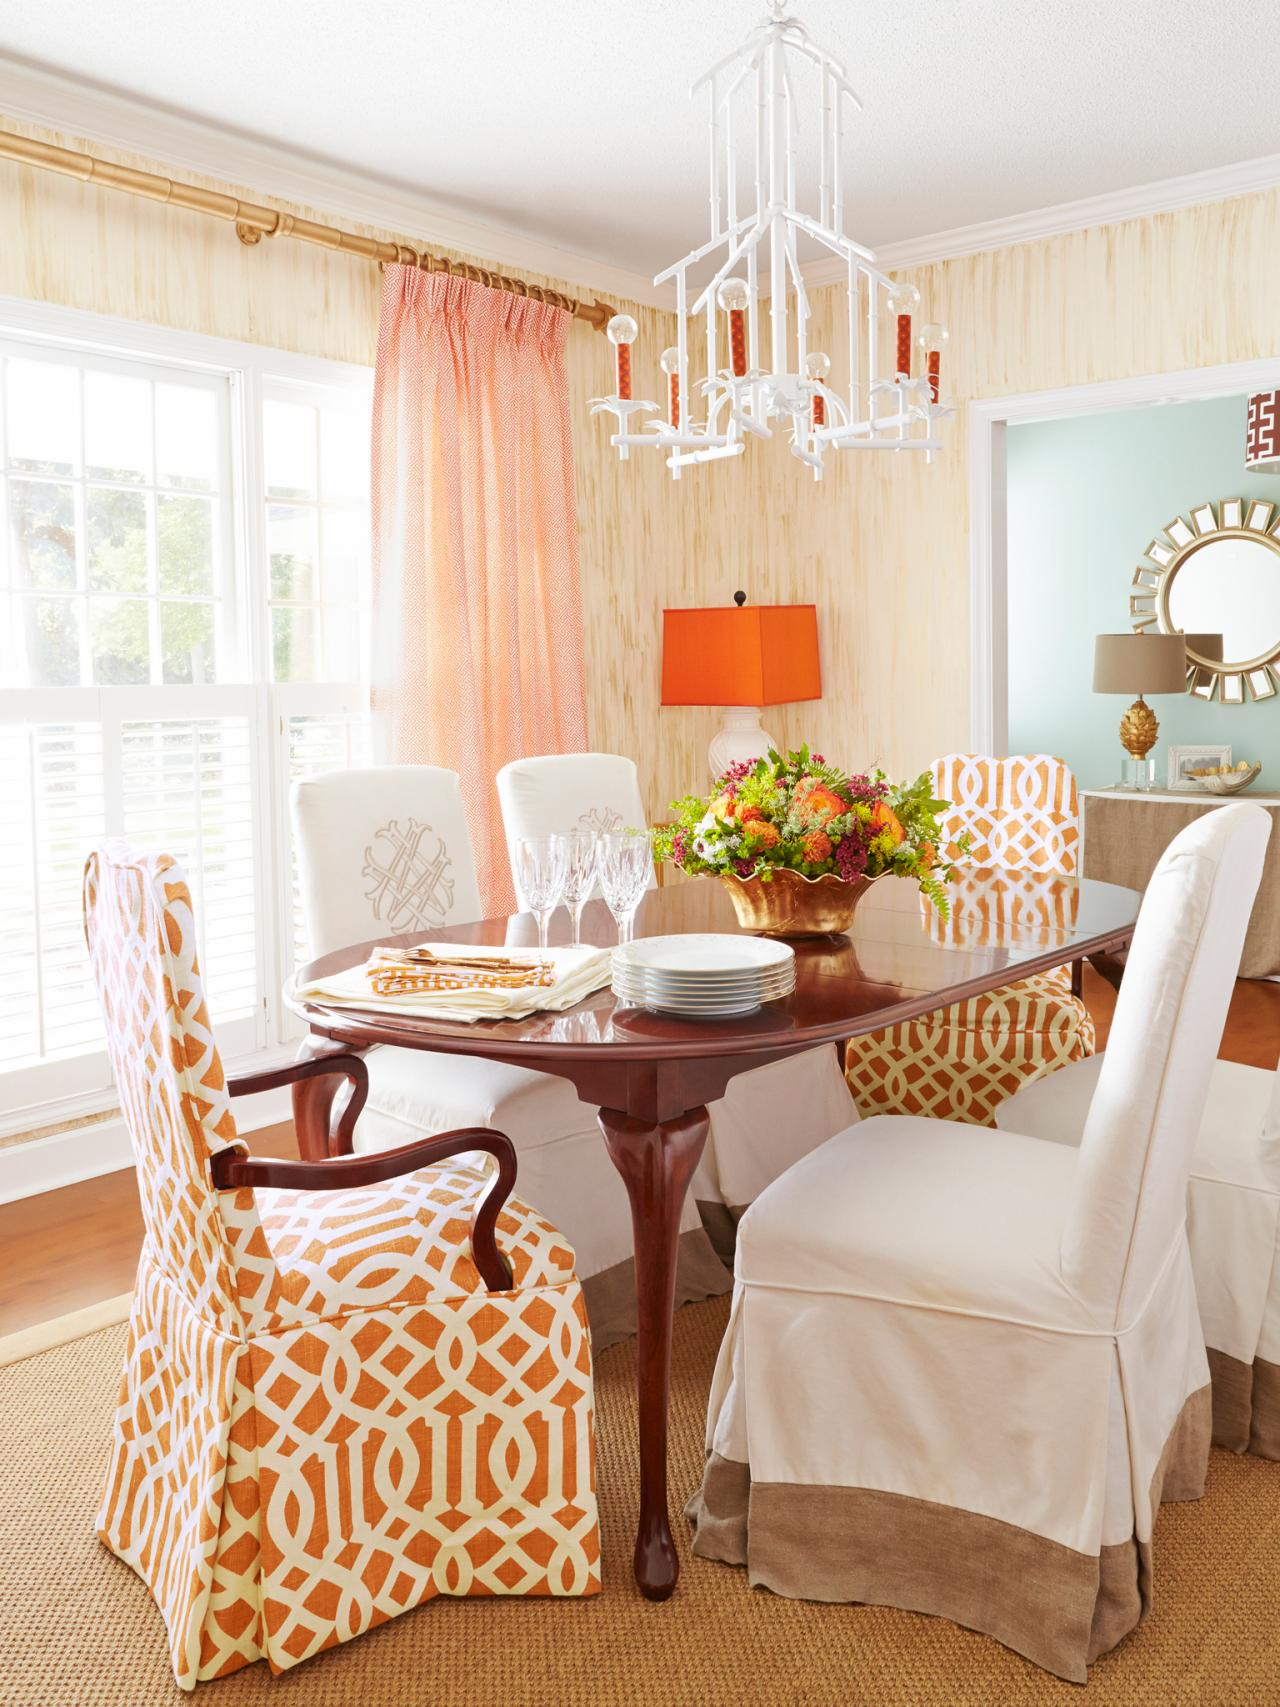 The Top 10 Decorating Tips From A Magazine Stylist HGTV